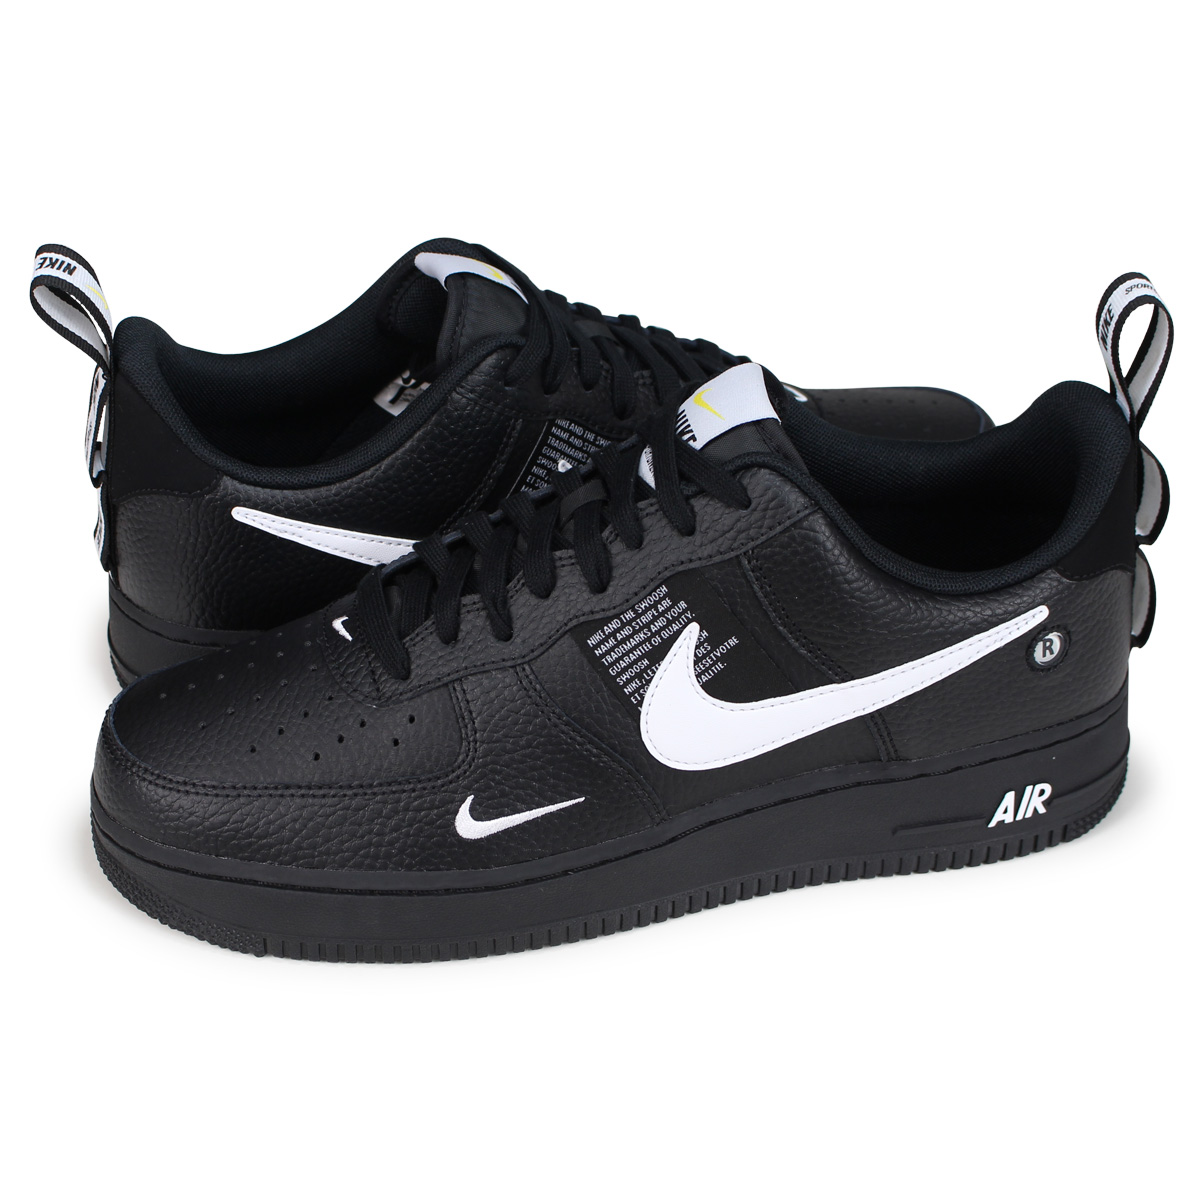 newest 0794a 15cbb NIKE AIR FORCE 1 07 LV8 UTILITY Nike air force 1 sneakers men AJ7747-001 ...